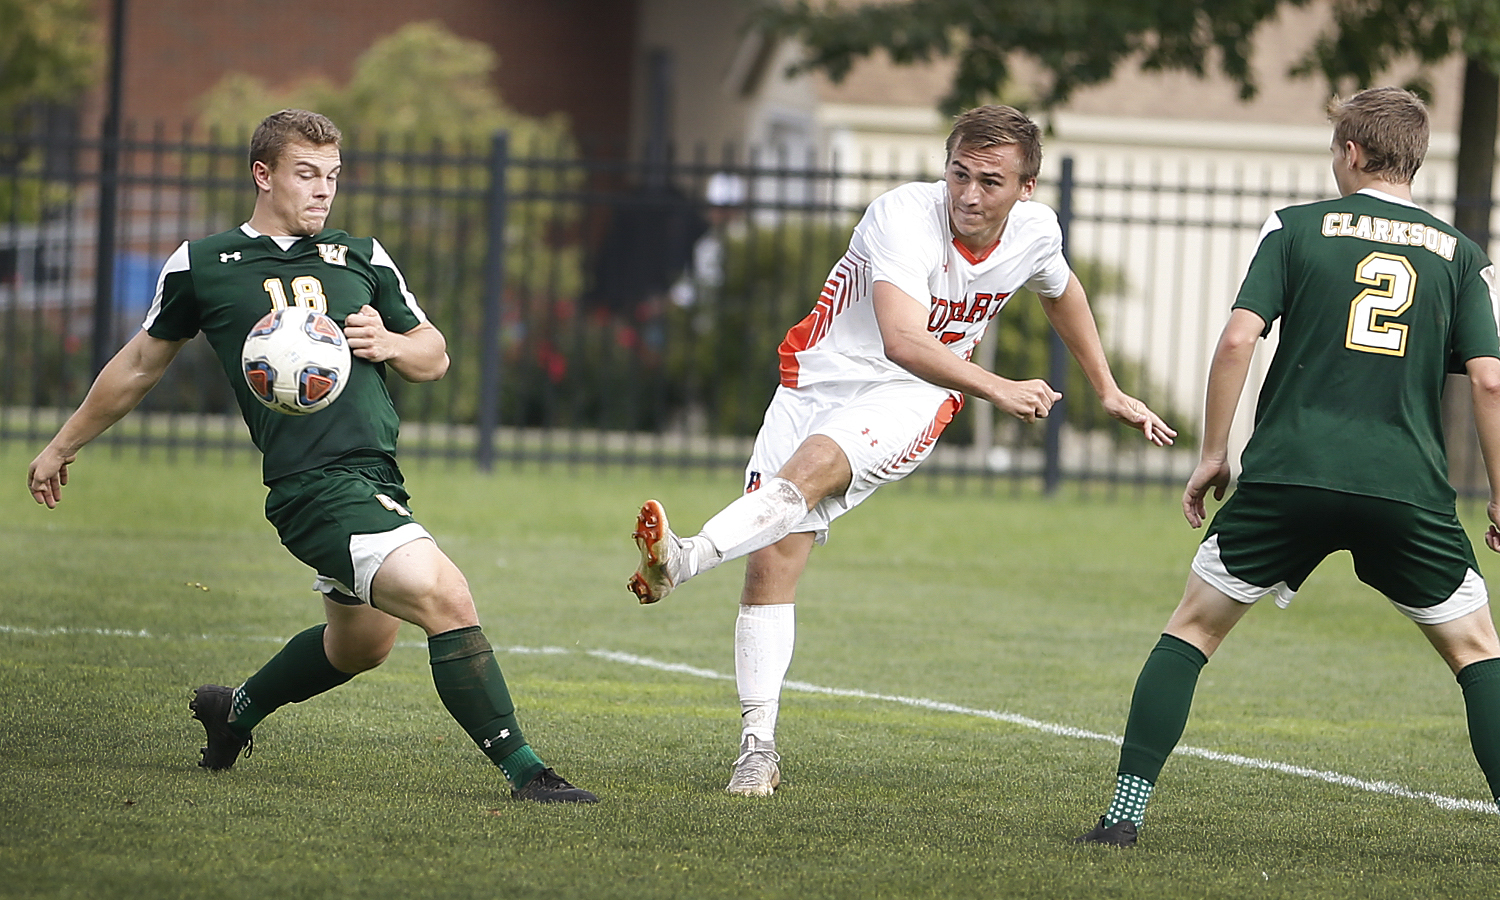 Kyle Mangold '21 scores in the ninth minute during the 1-0 win against Clarkson College on Cozzens Field.